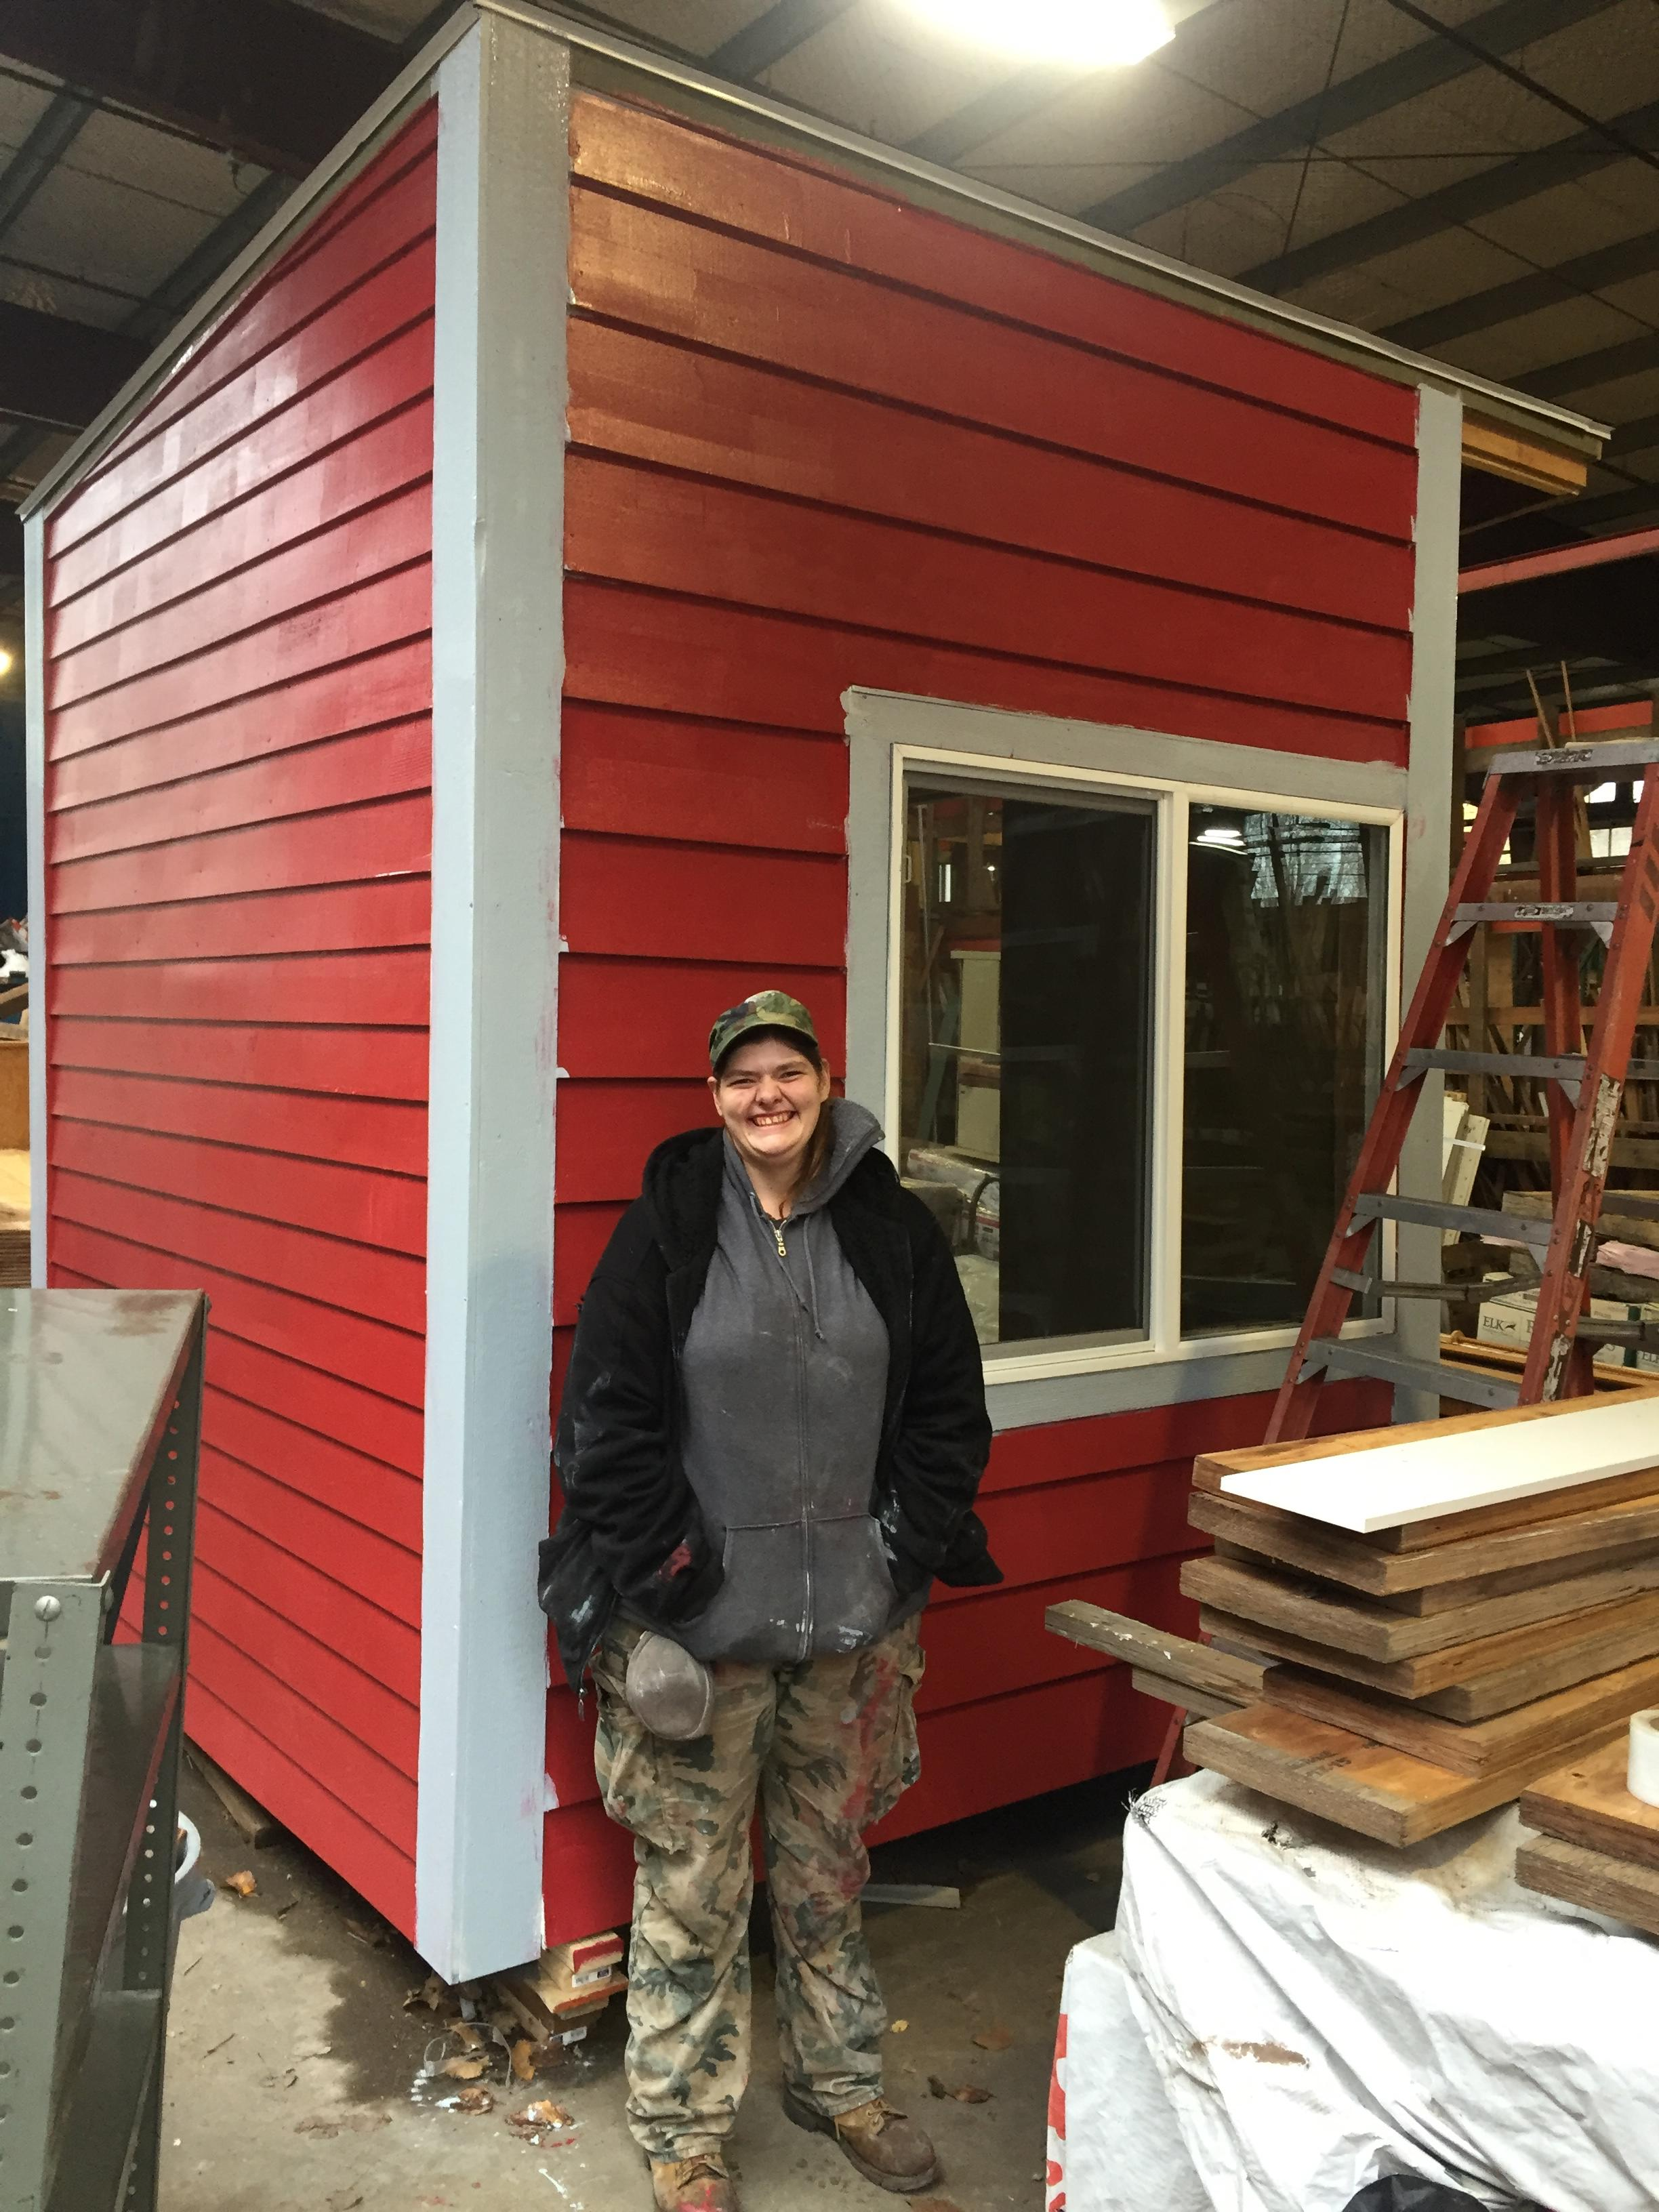 Loki with her tiny house built in the RBC lumberyard